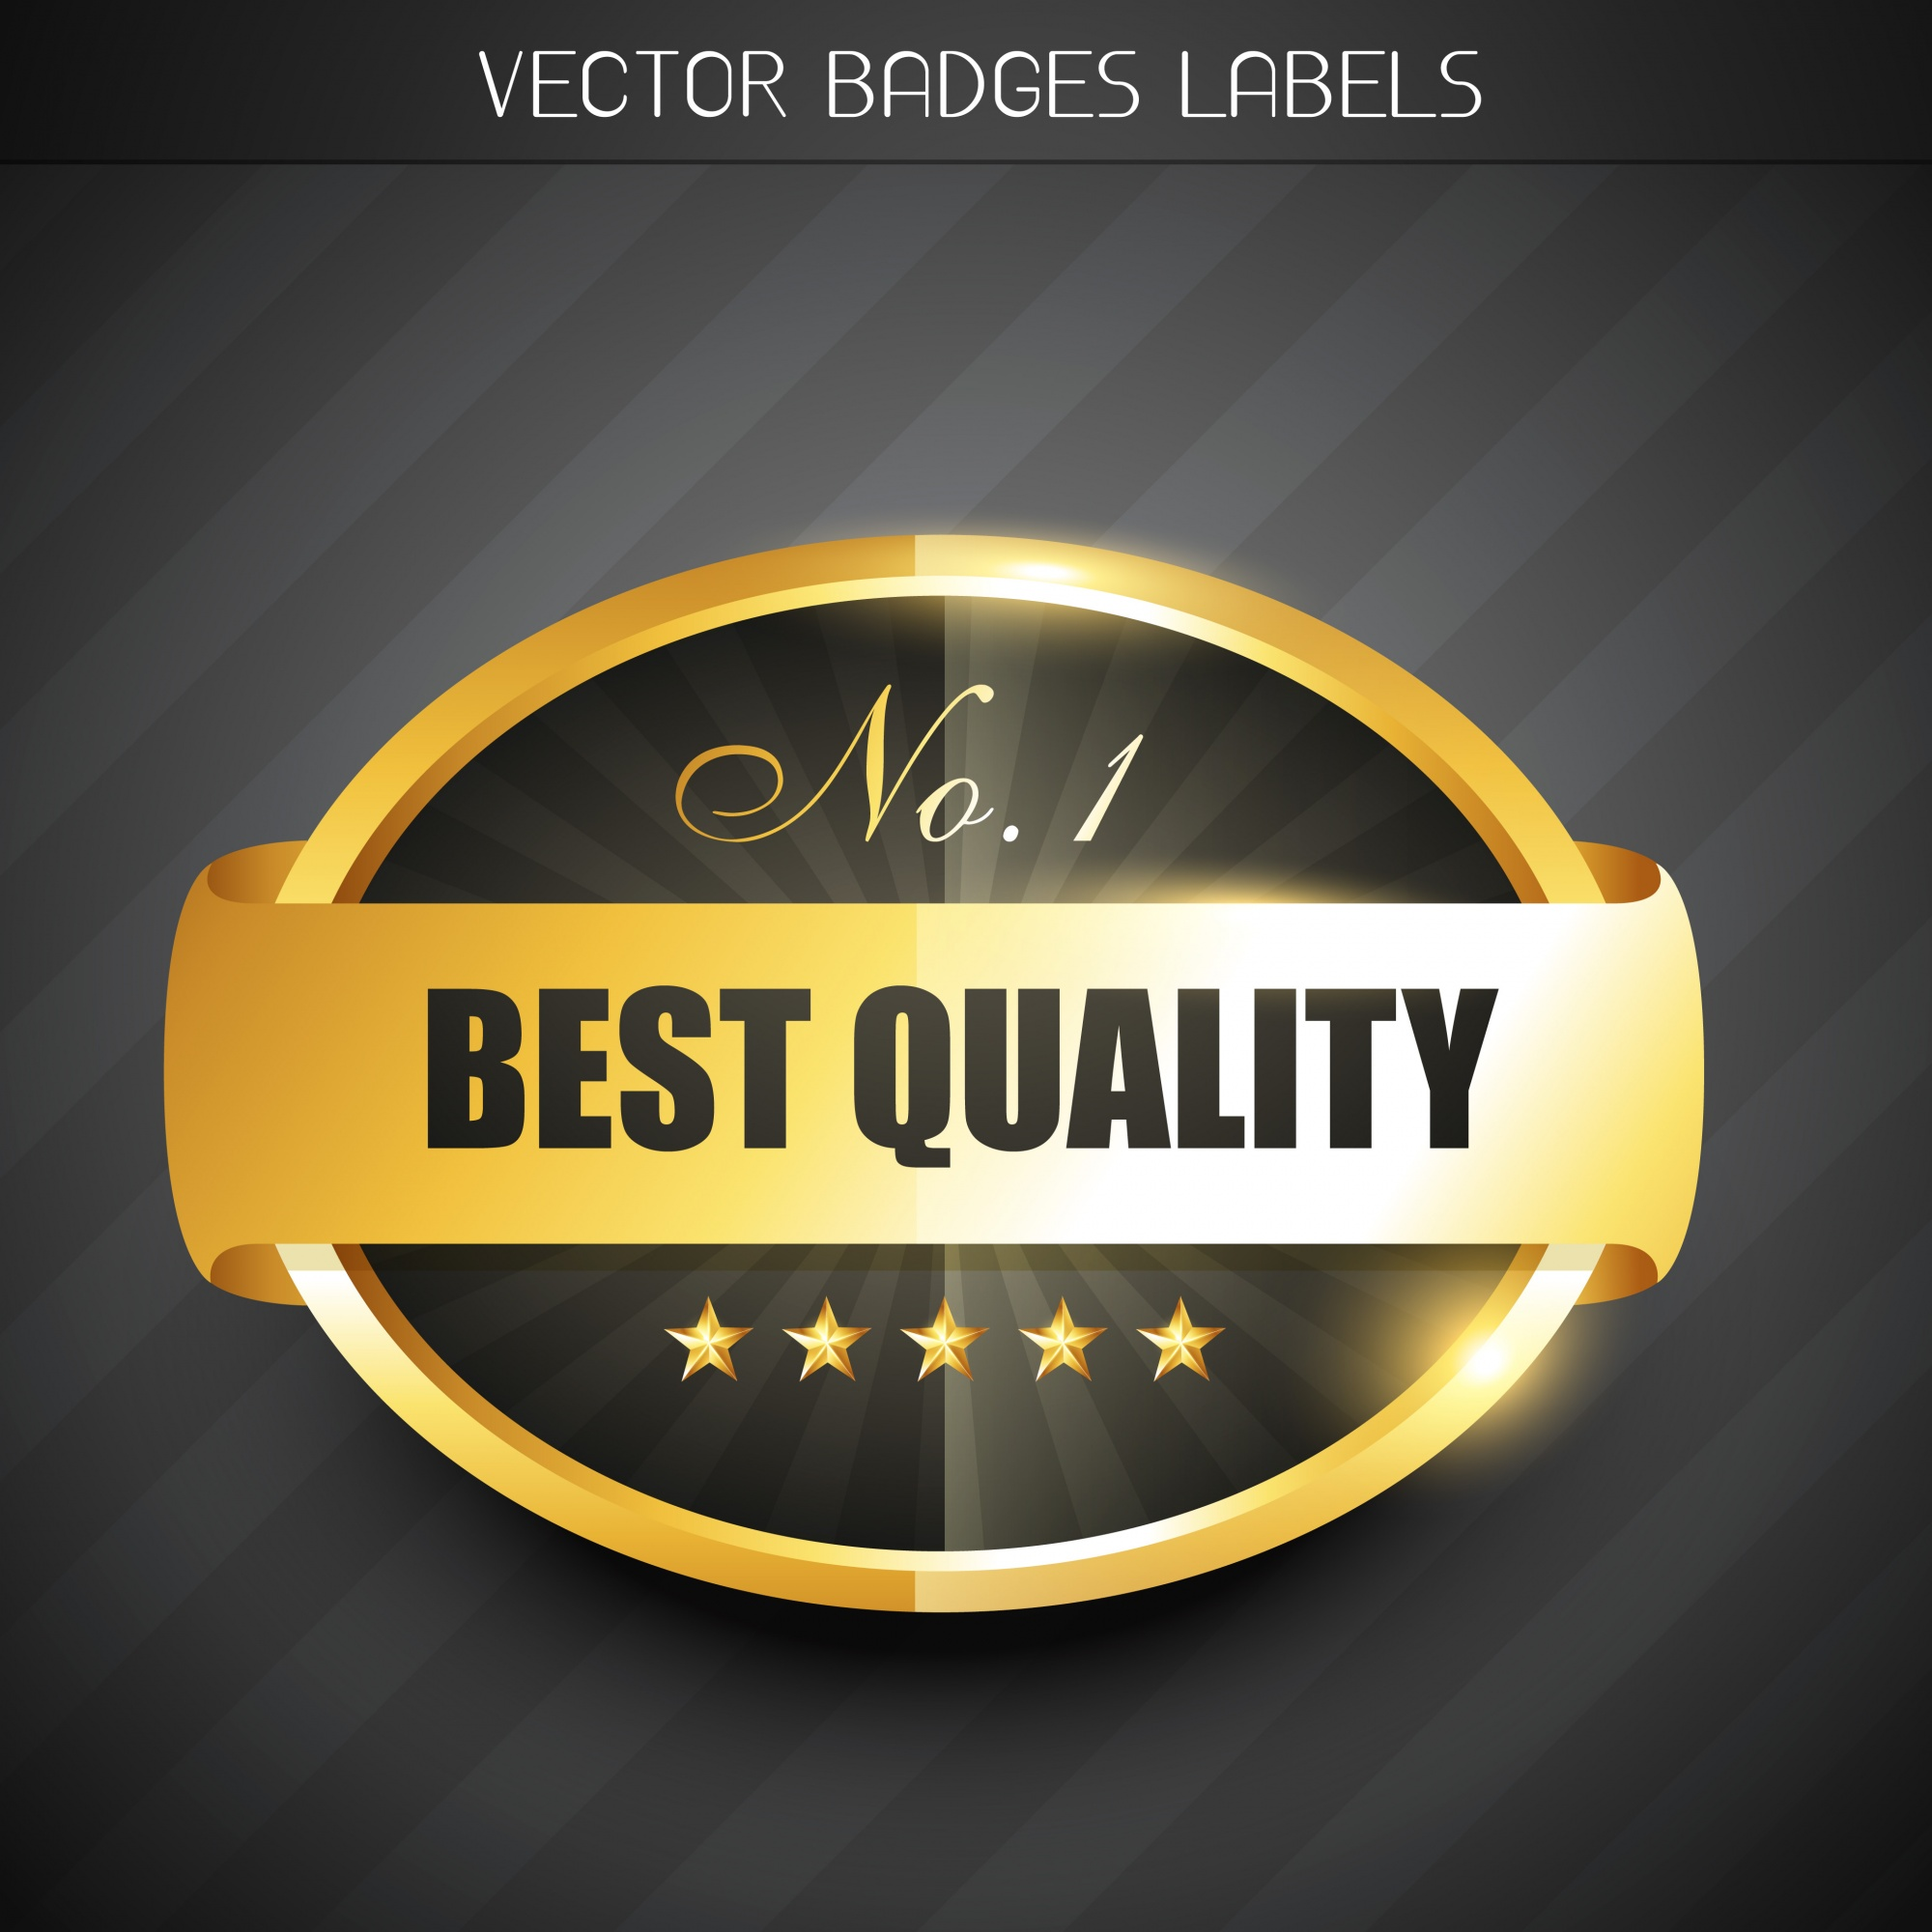 Best quality label